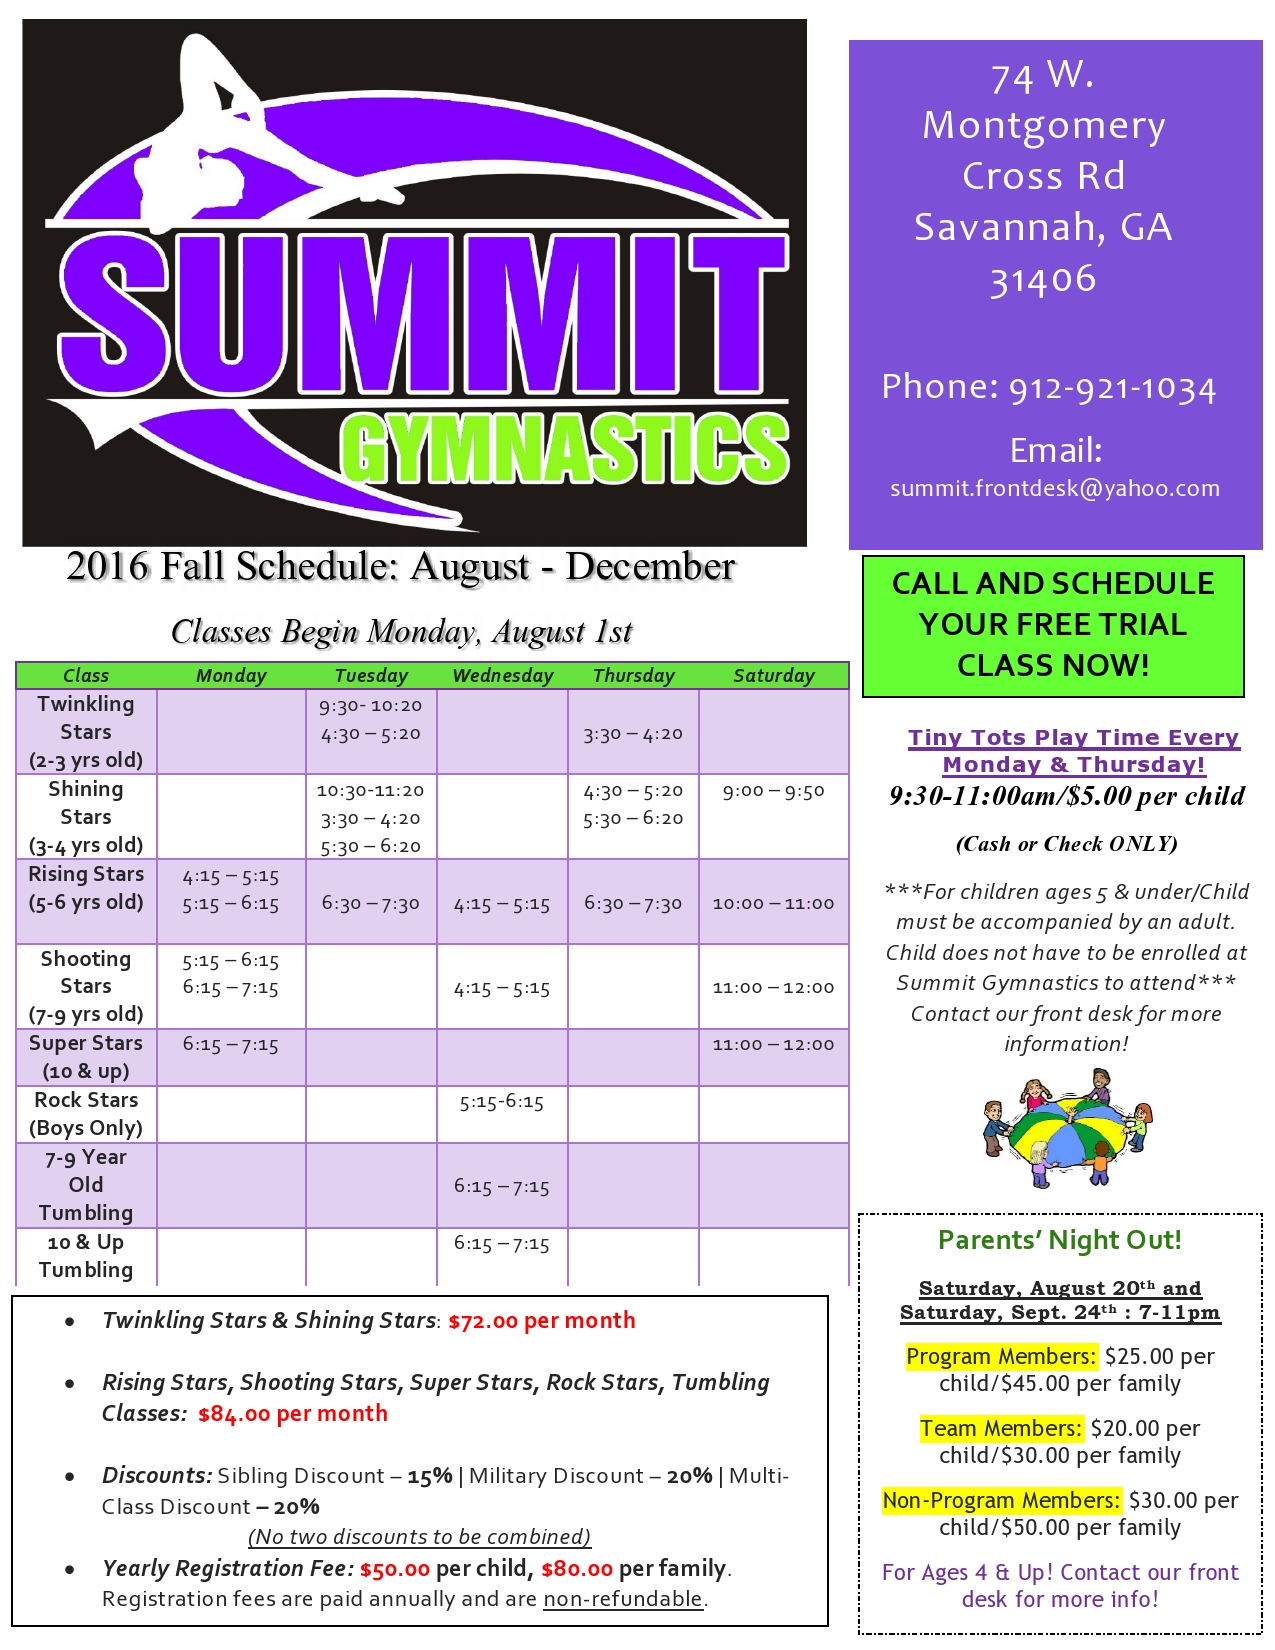 Gymnastics Classes Savannah Tumbling Summit